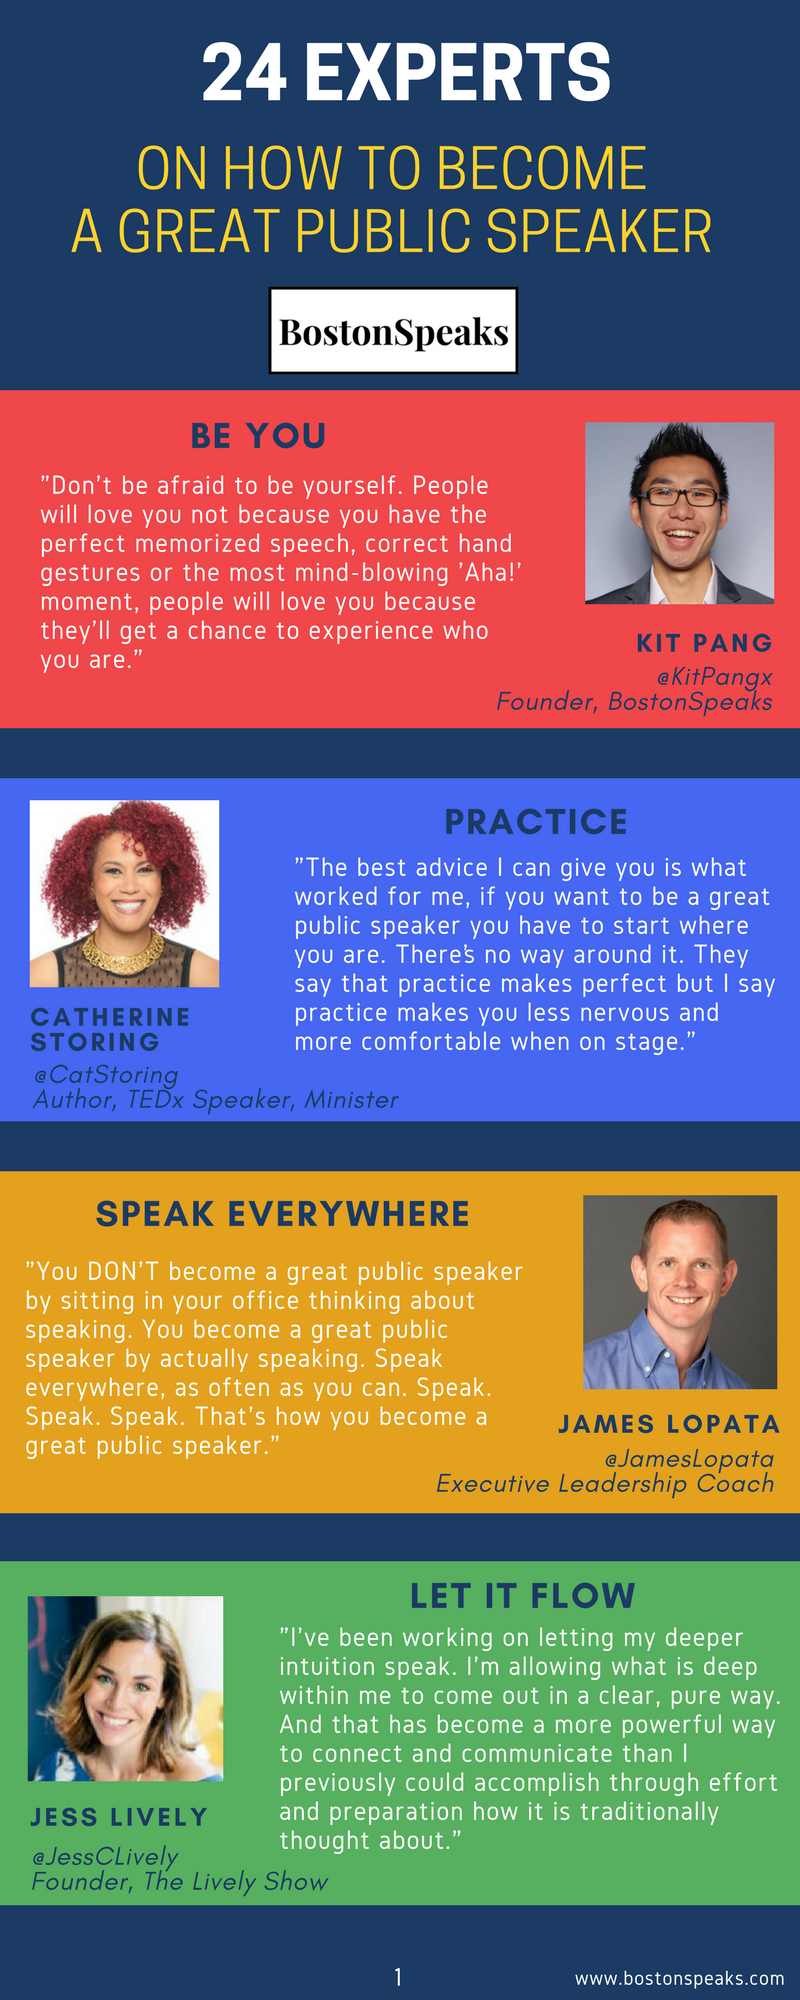 10 Experts On How To Become A Great Public Speaker  by Kit Pang